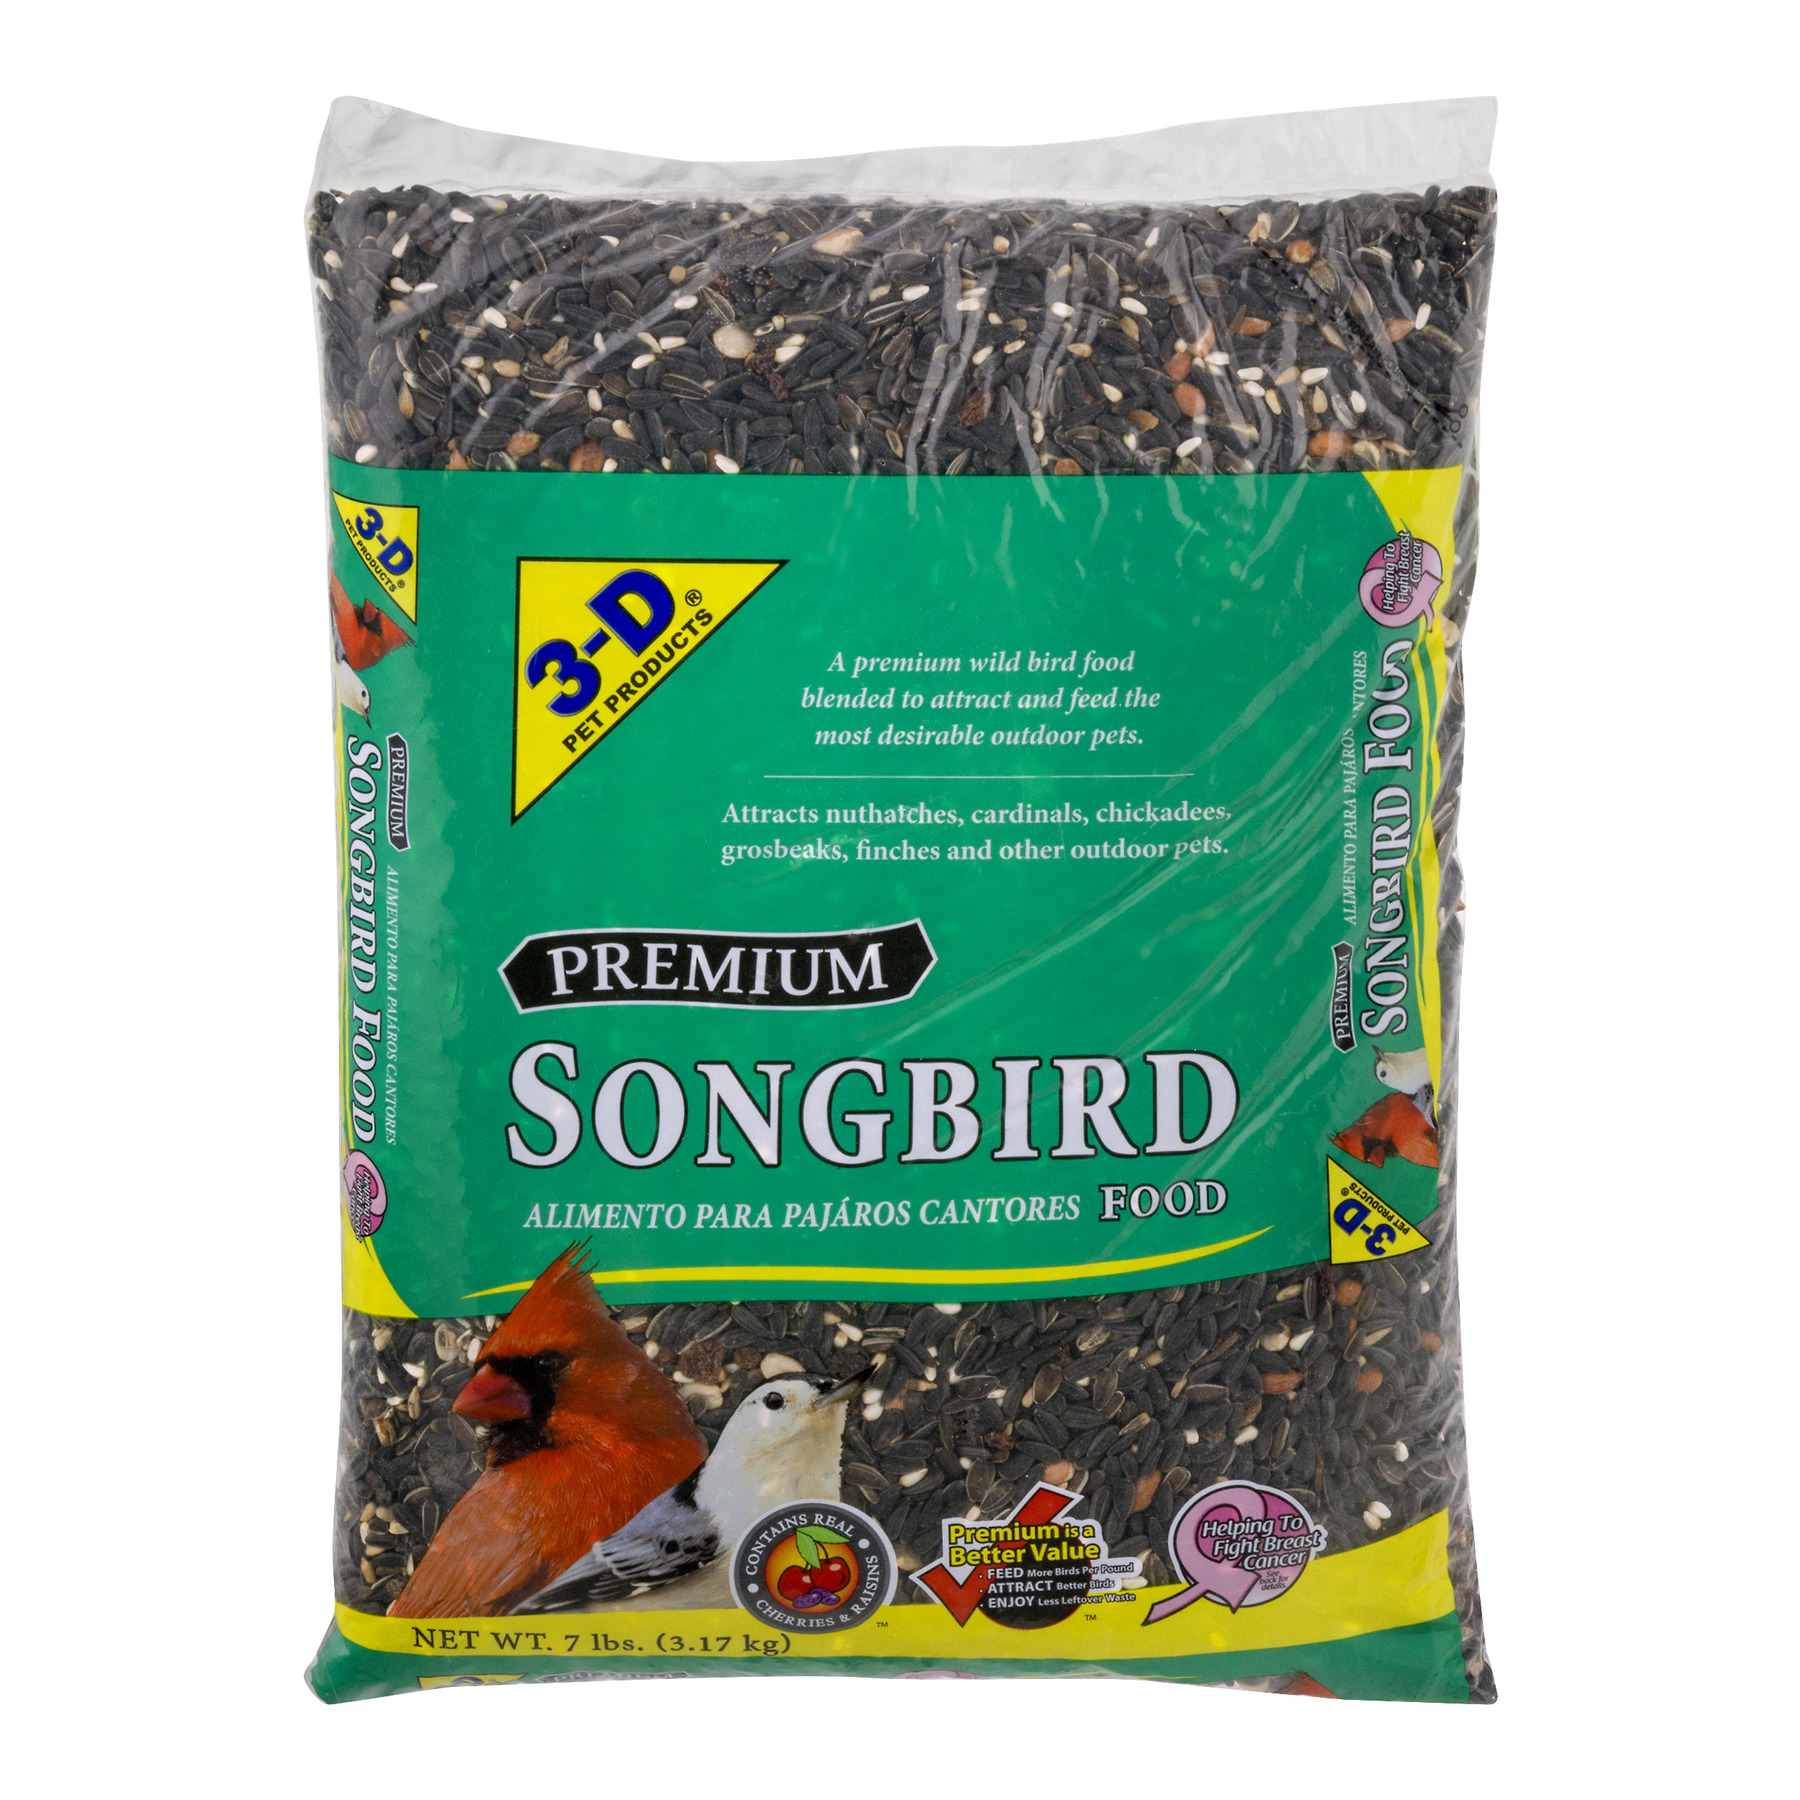 3-D Pet Products Premium Songbird Food Dry Bird Food, 7 LB